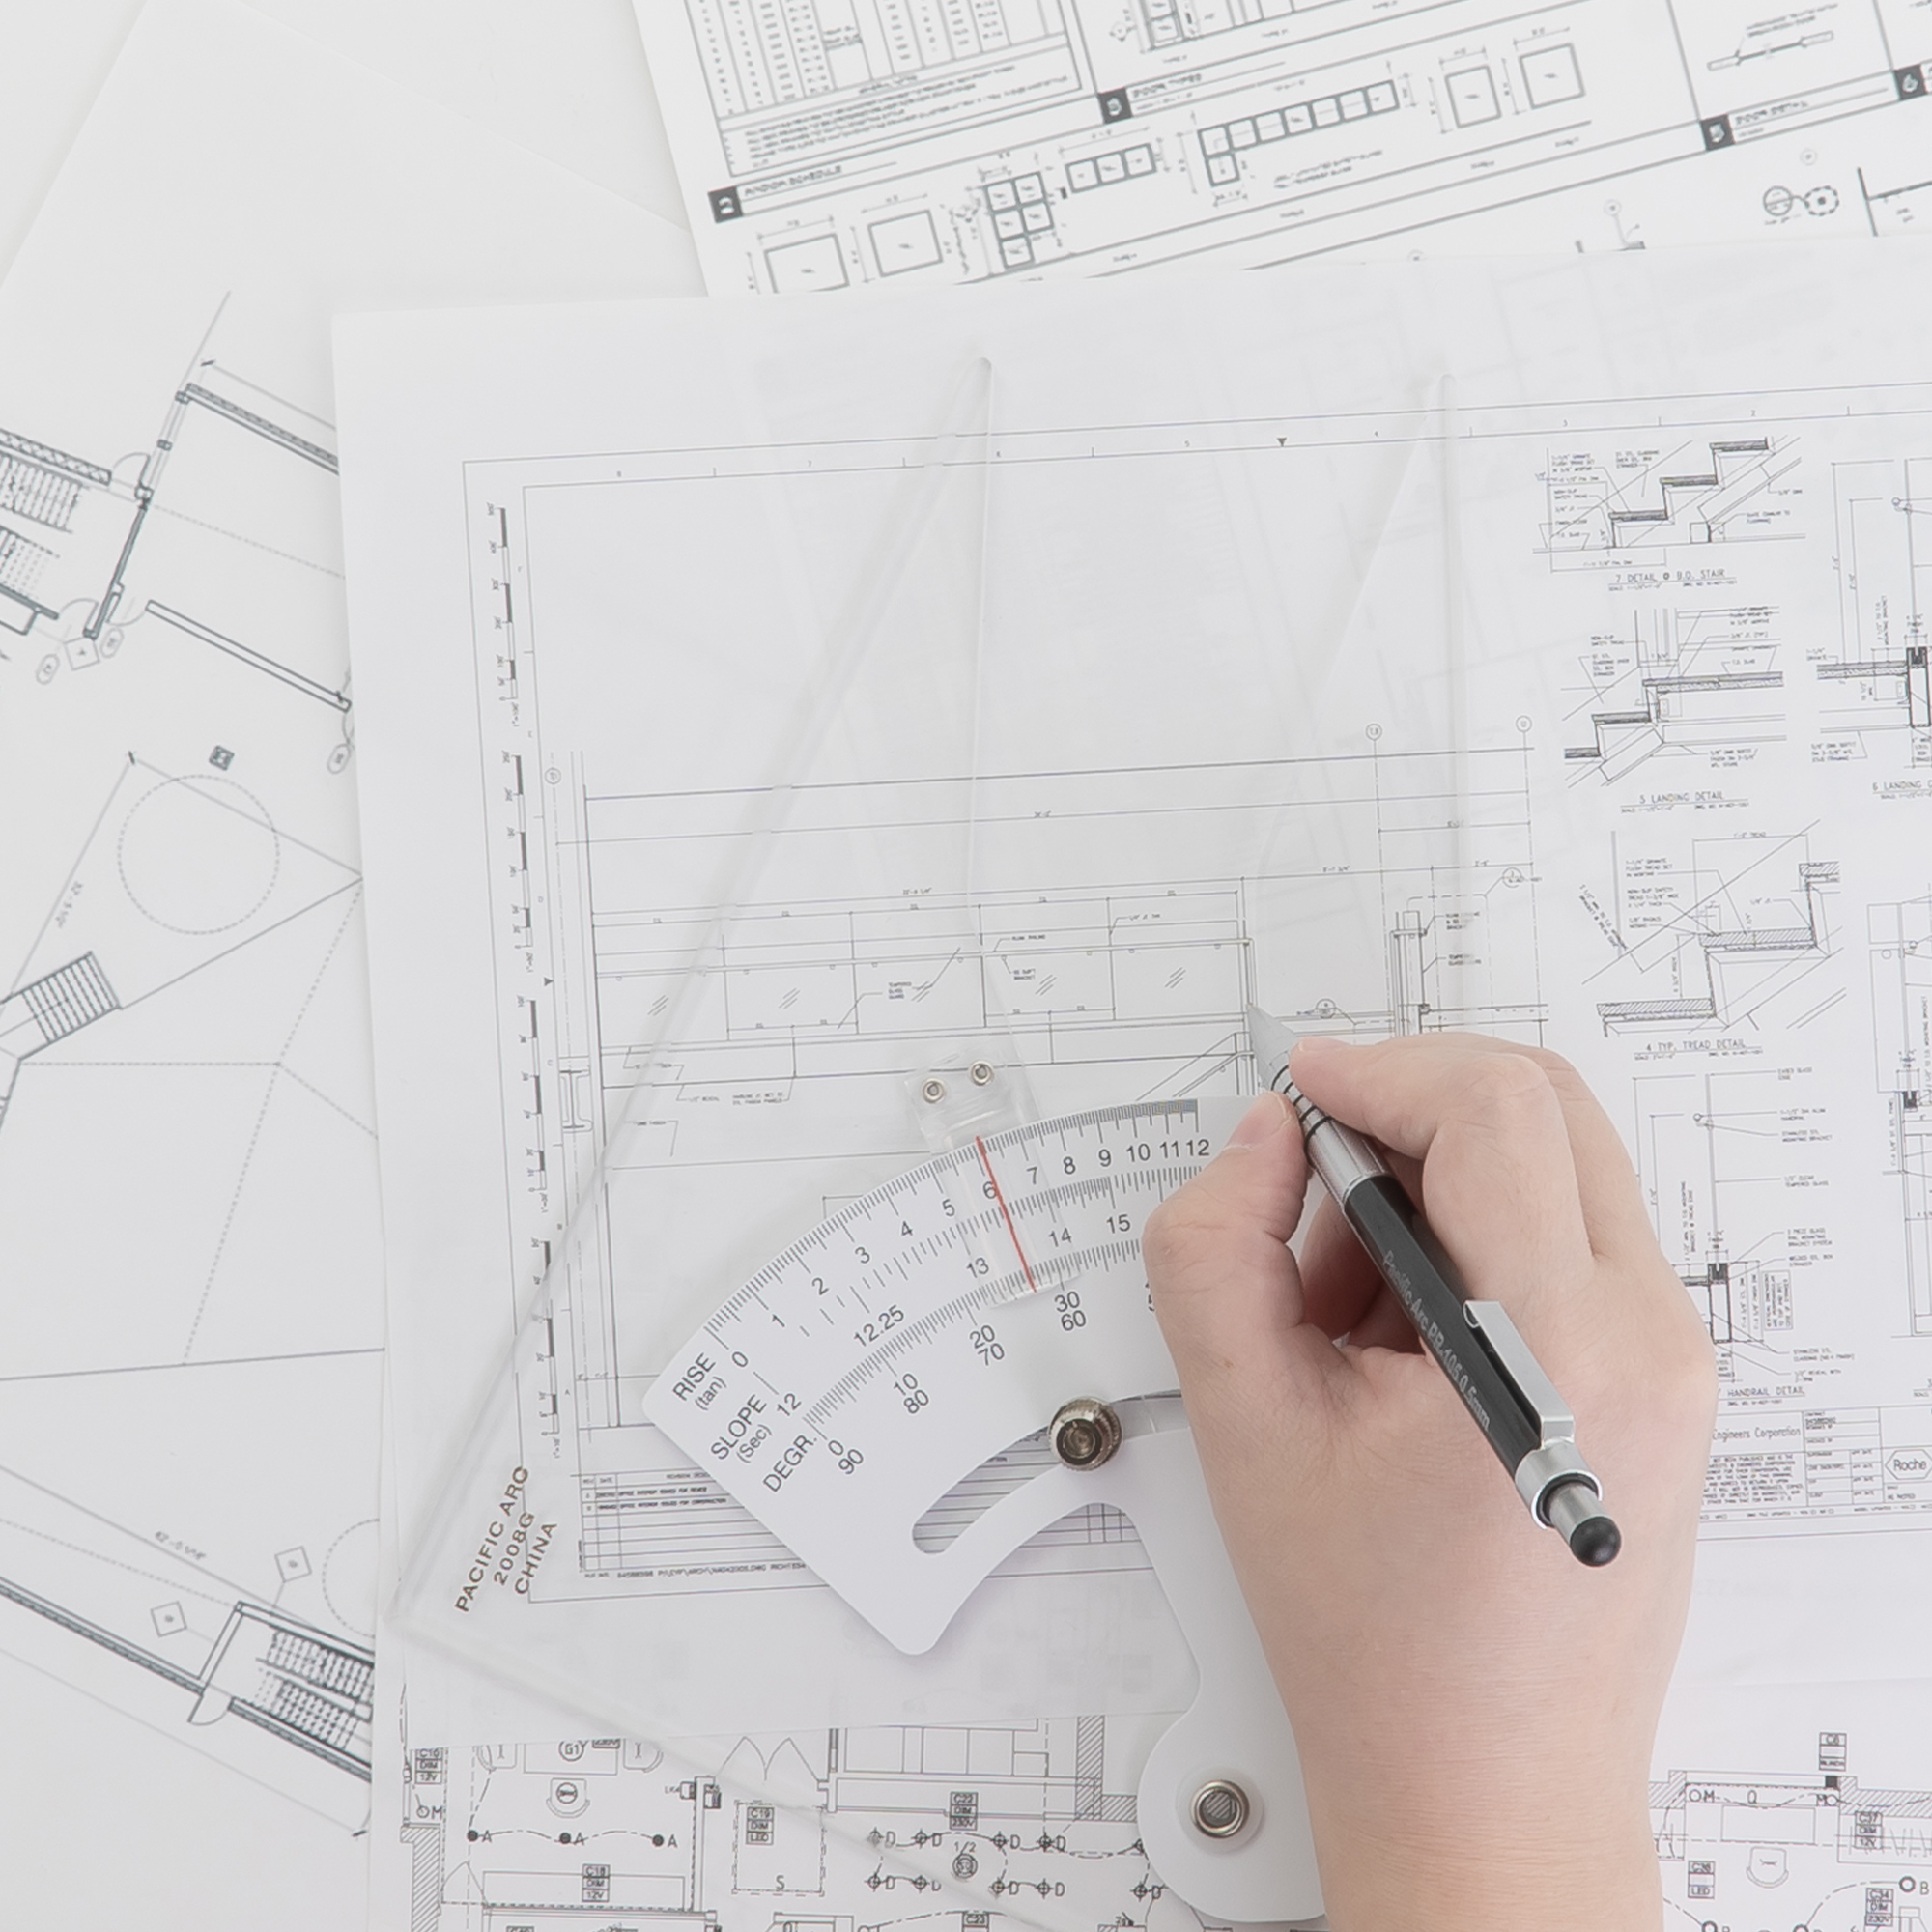 The best drafting triangles for architecture, engineering and design or art. The best triangles for art and design.